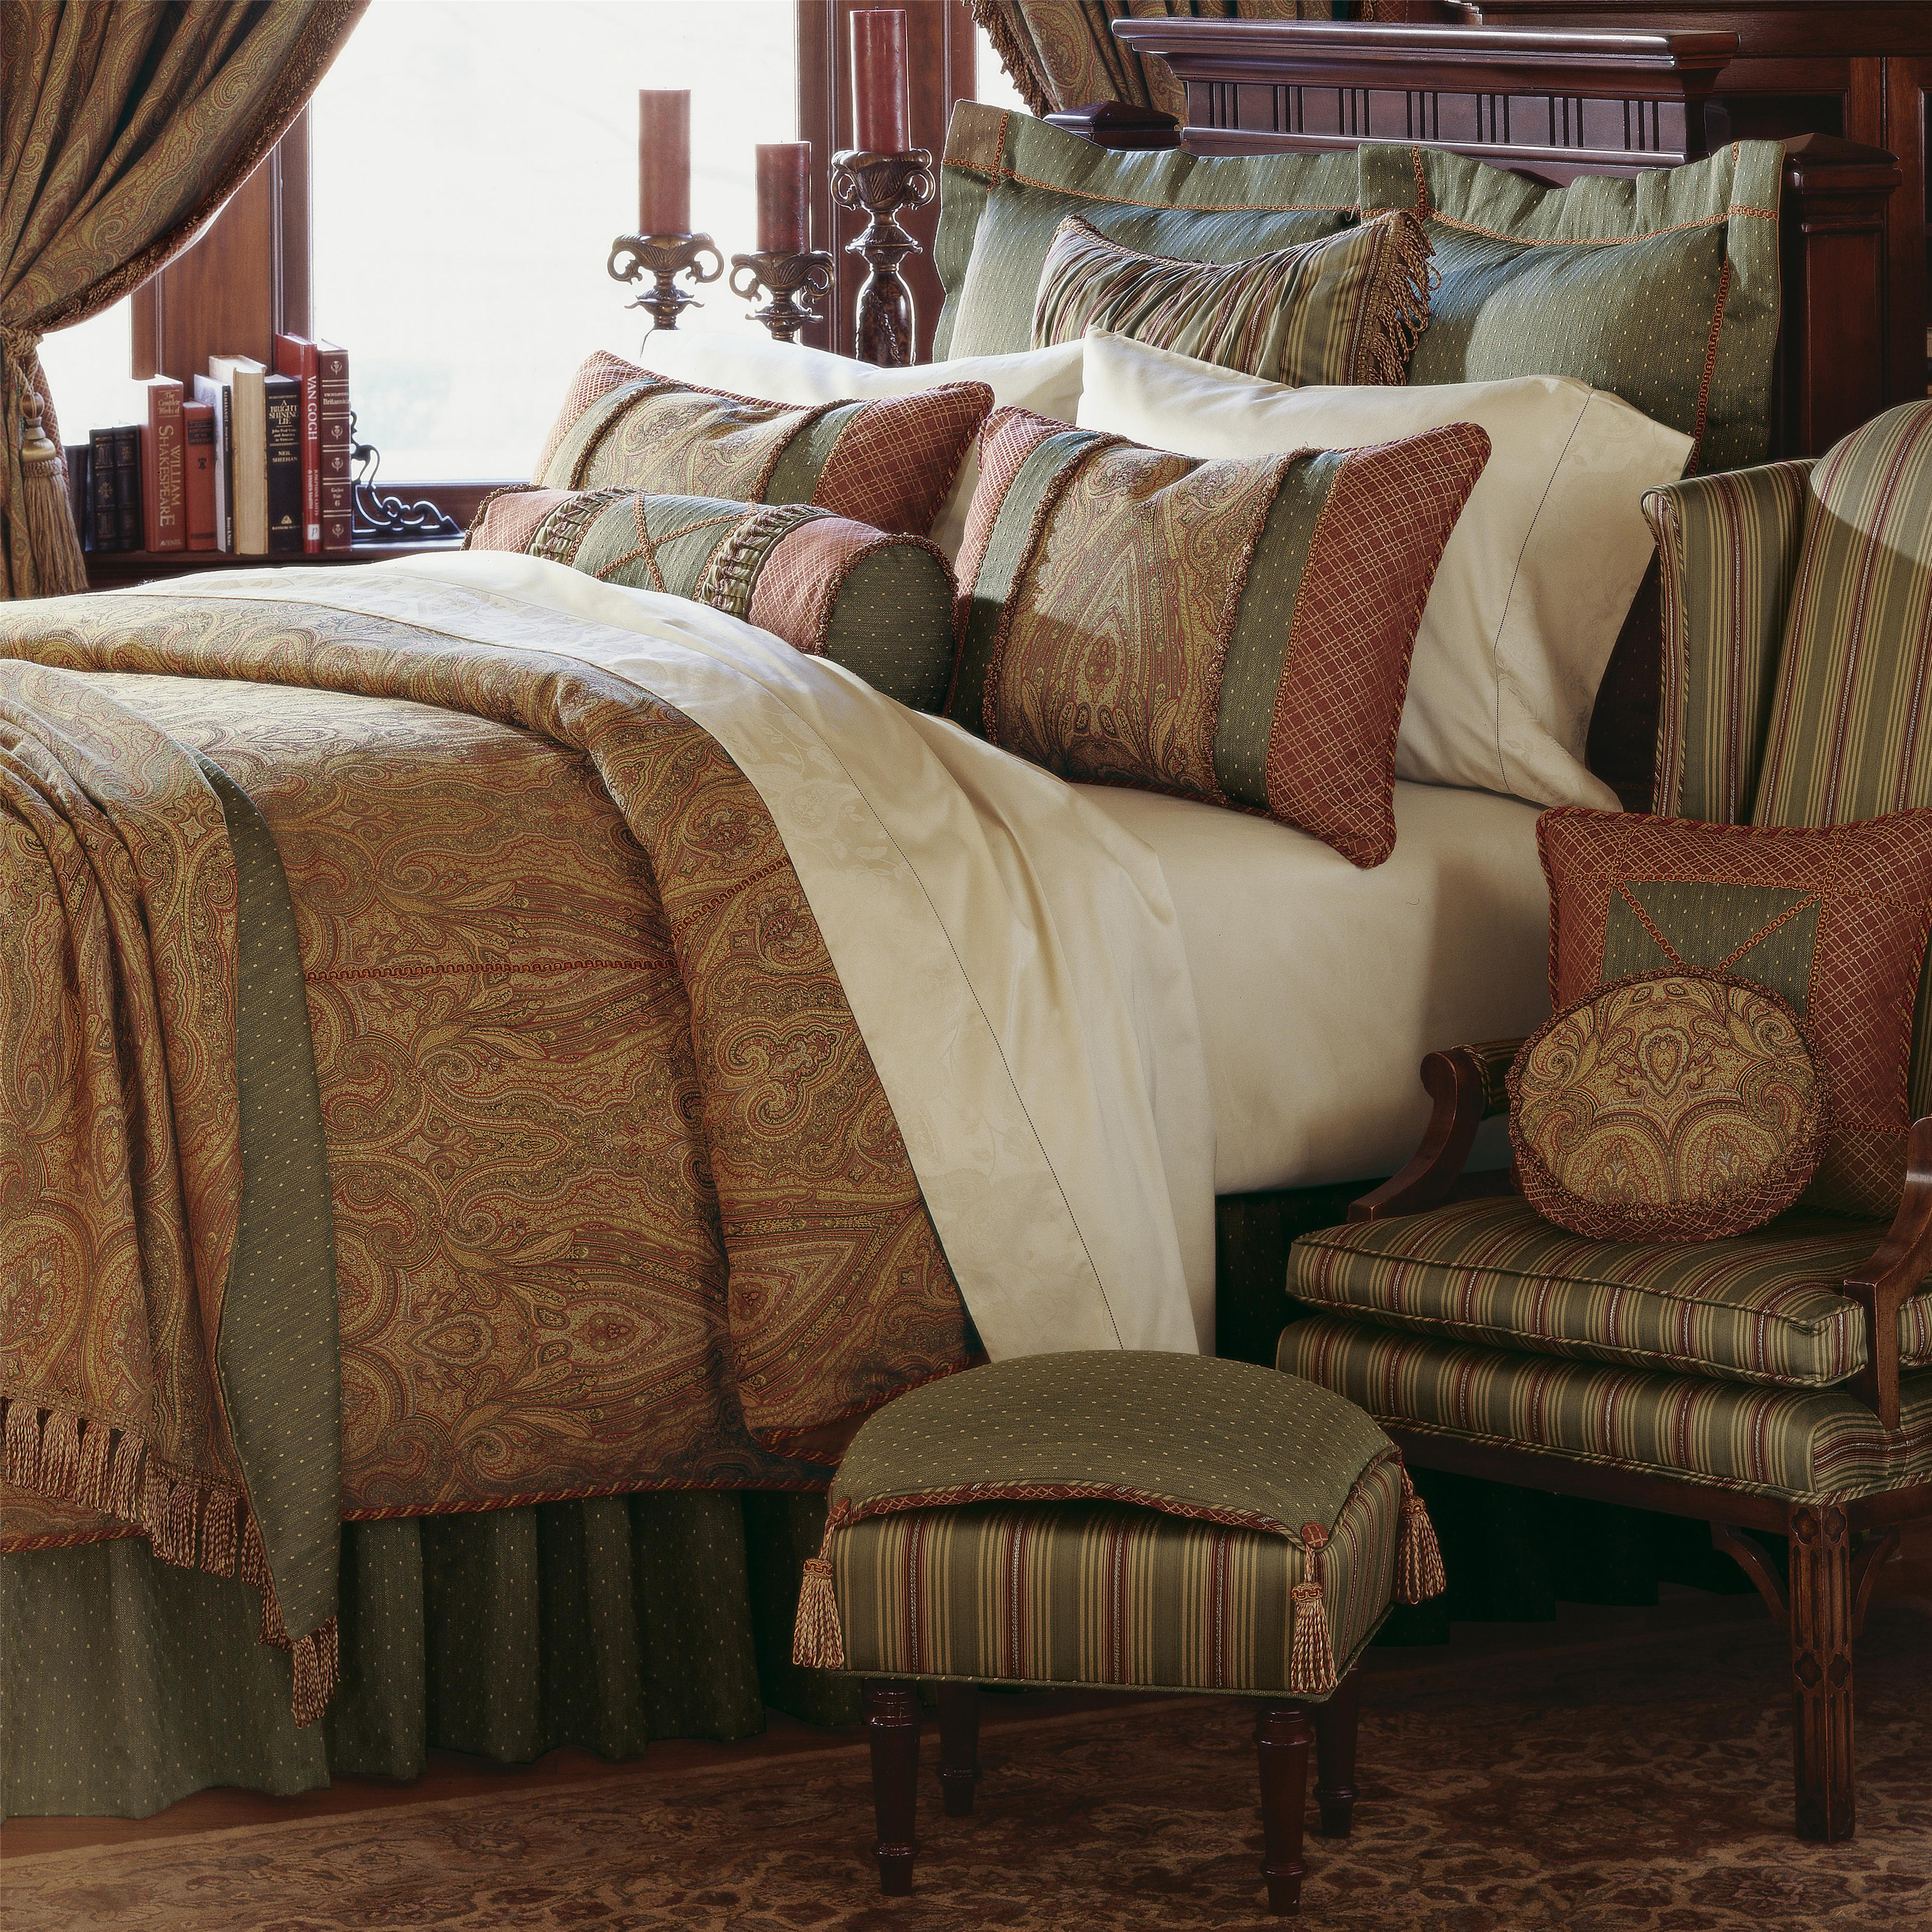 Glenwood Full Button-Tufted Comforter by Eastern Accents at Alison Craig Home Furnishings